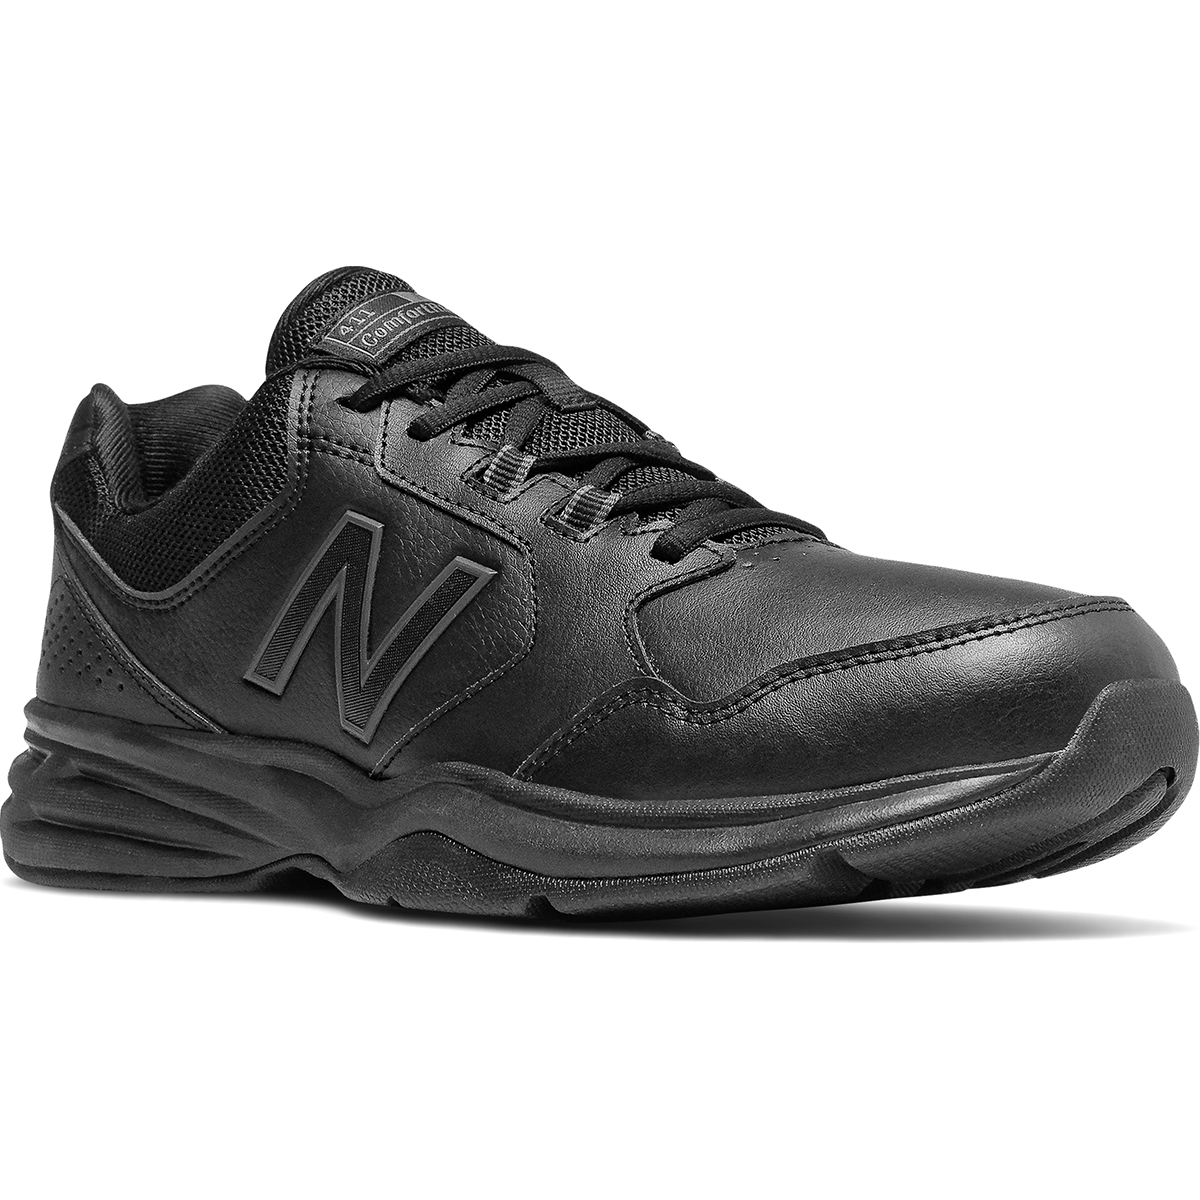 New Balance Men's 411 Walking Shoes - Black, 11